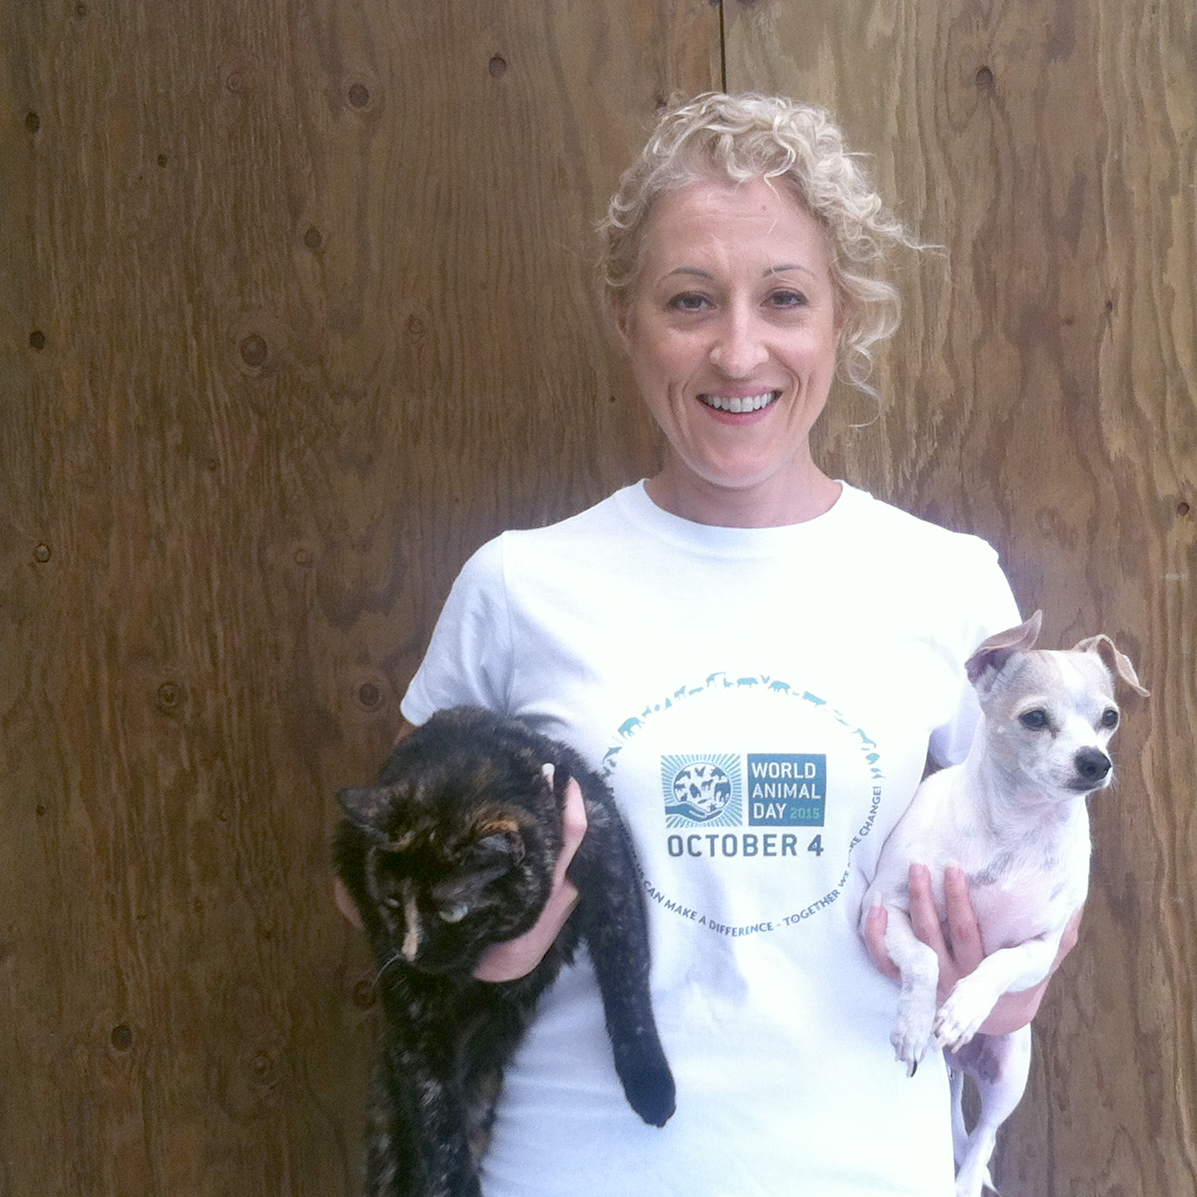 Wearing a shirt she designed for World Animal Day, this is Delia Bonfilio holding her cat, Xena, and dog, Dalai Mama.